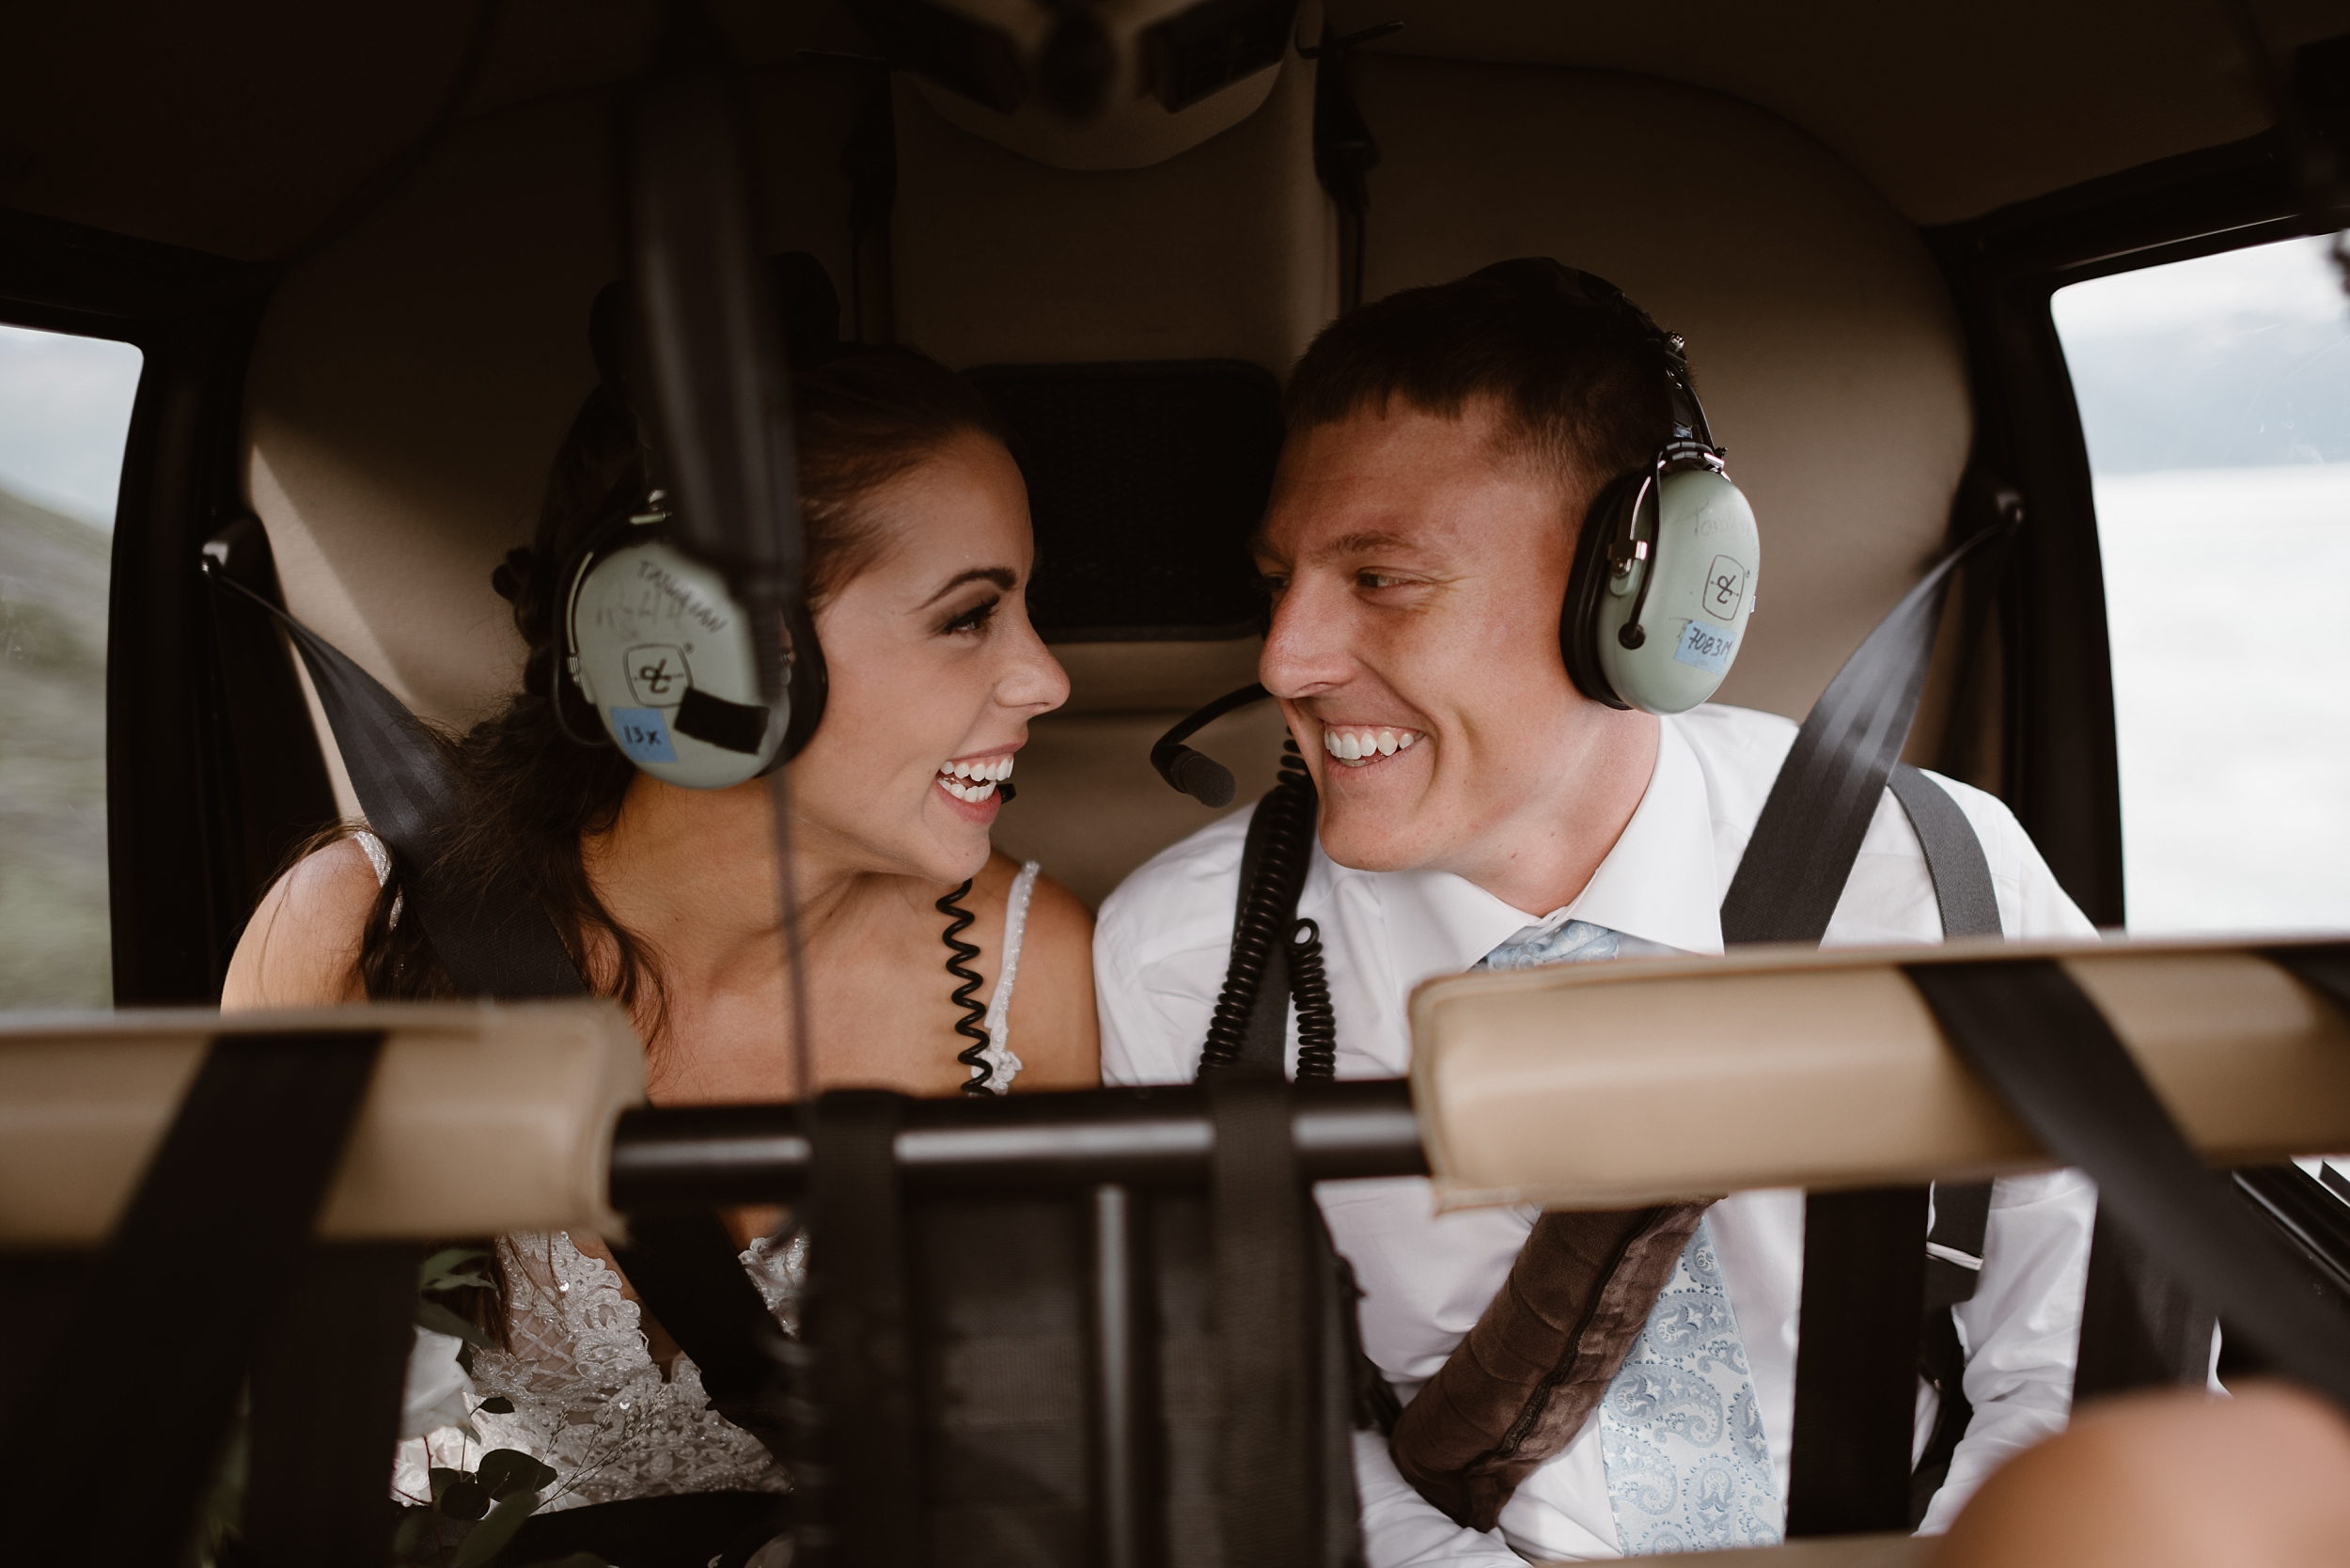 Both Jordyn and Connor sit inside the back of the helicopter as they prepare to take off for their Alaska helicopter elopement story. The stare at each other, smiling, with a stunning backdrop of Alaska green and blues in the windows.